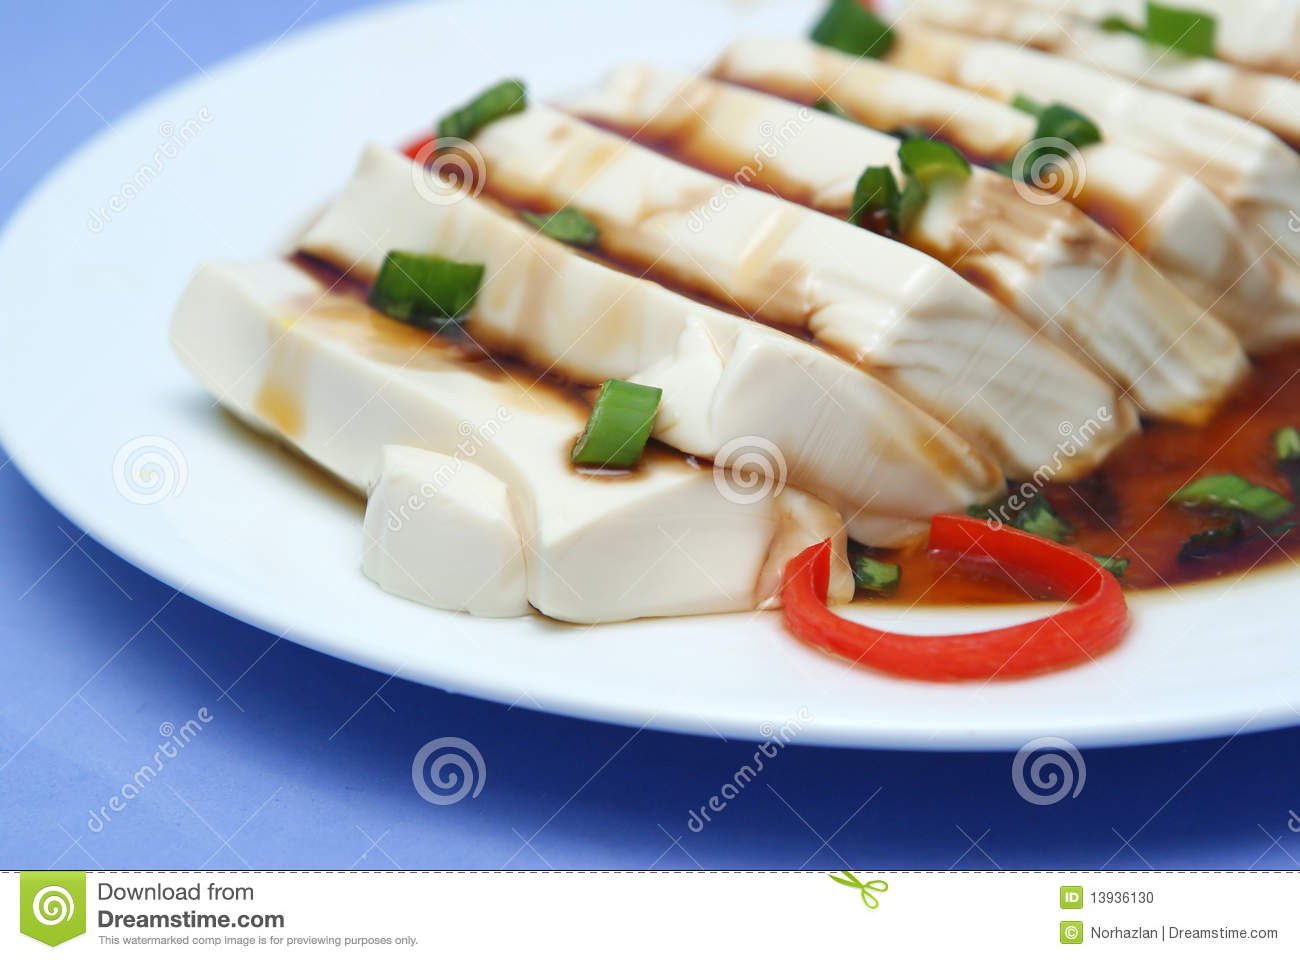 Tofu With Soy Sauce In Delicious Looks